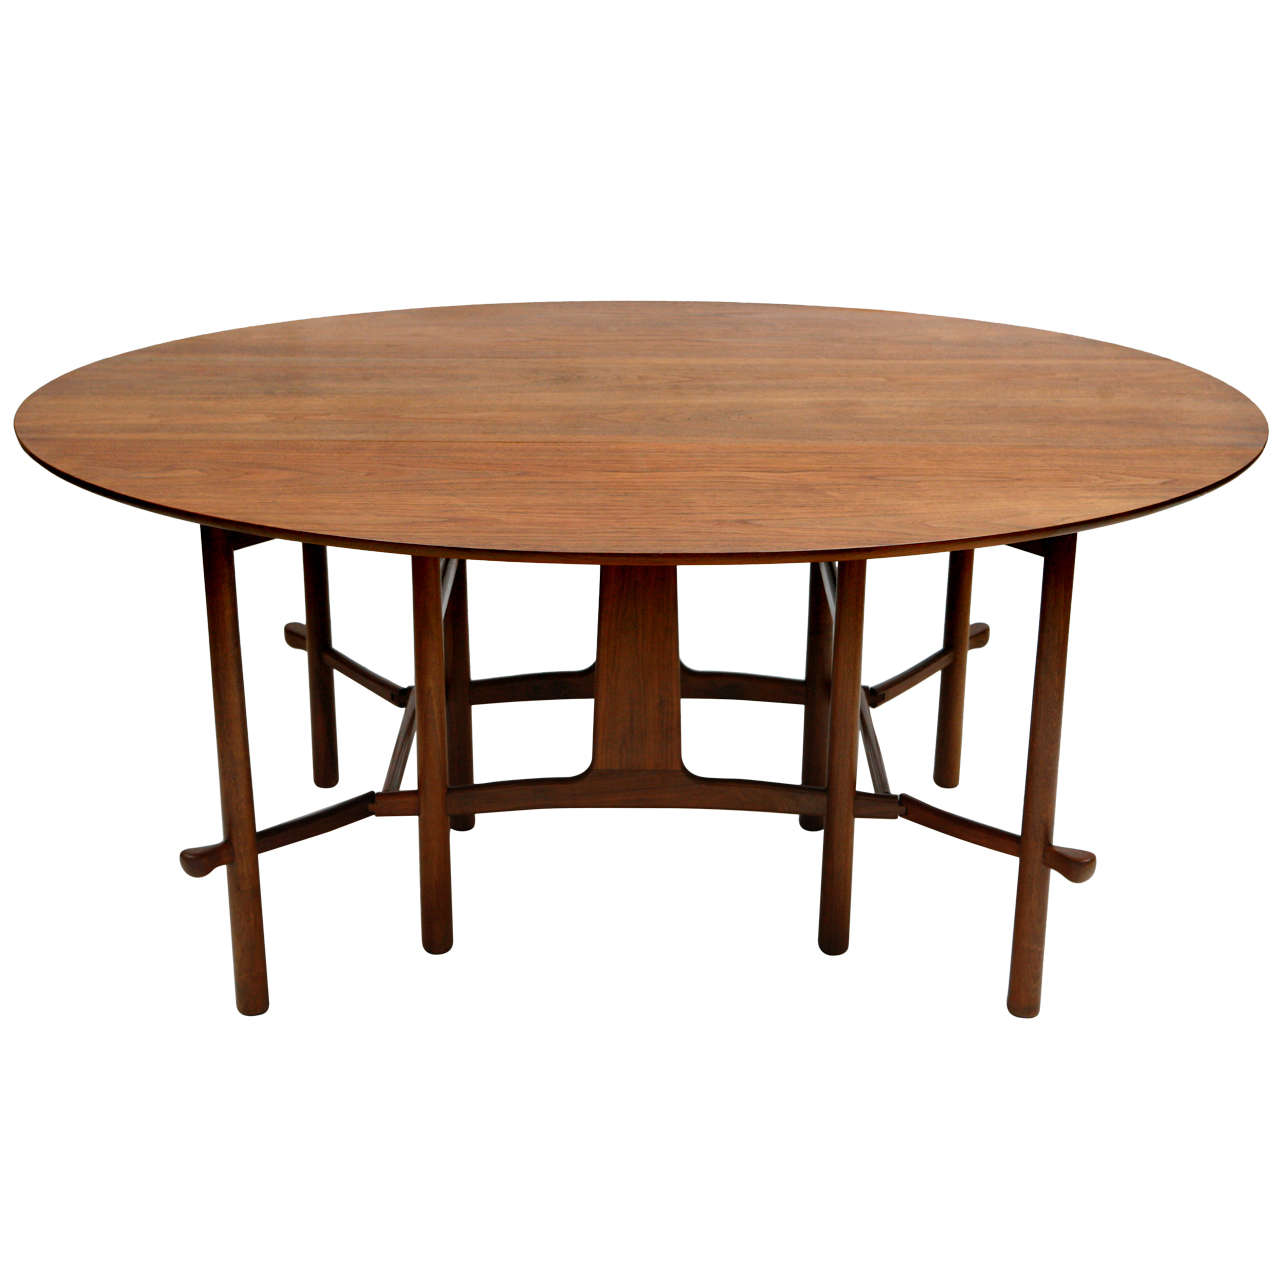 Heritage Henredon Gateleg Table For Sale at 1stdibs